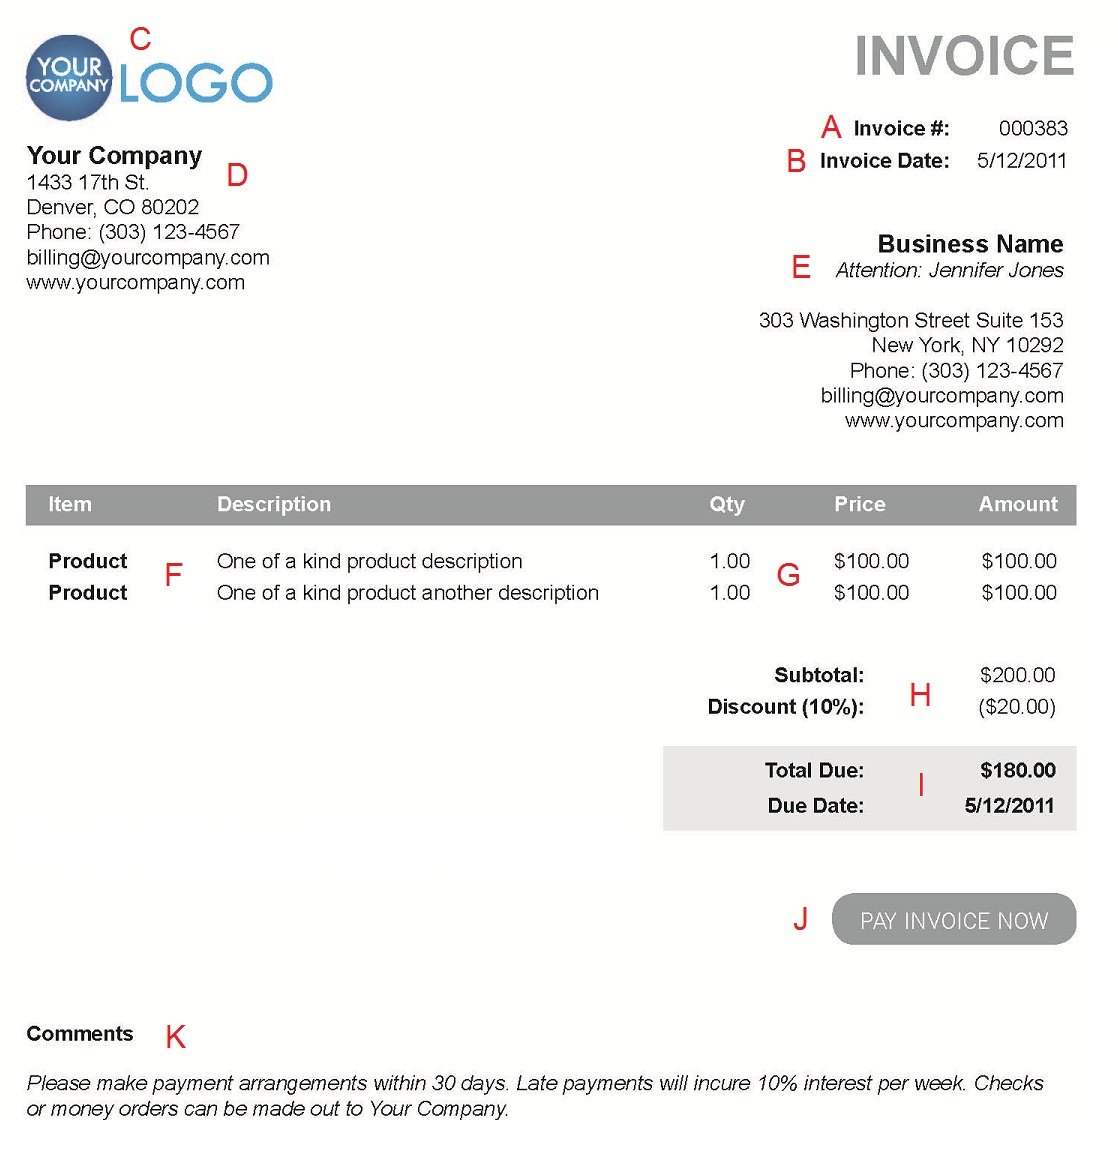 Gpwaus  Unusual The  Different Sections Of An Electronic Payment Invoice With Goodlooking A  With Beauteous Tax Invoice Template Excel Also Invoice And Accounting Software In Addition Blank Invoice Template Uk And  Mazda Invoice Price As Well As How To Right An Invoice Additionally Best Invoicing App For Iphone From Paysimplecom With Gpwaus  Goodlooking The  Different Sections Of An Electronic Payment Invoice With Beauteous A  And Unusual Tax Invoice Template Excel Also Invoice And Accounting Software In Addition Blank Invoice Template Uk From Paysimplecom